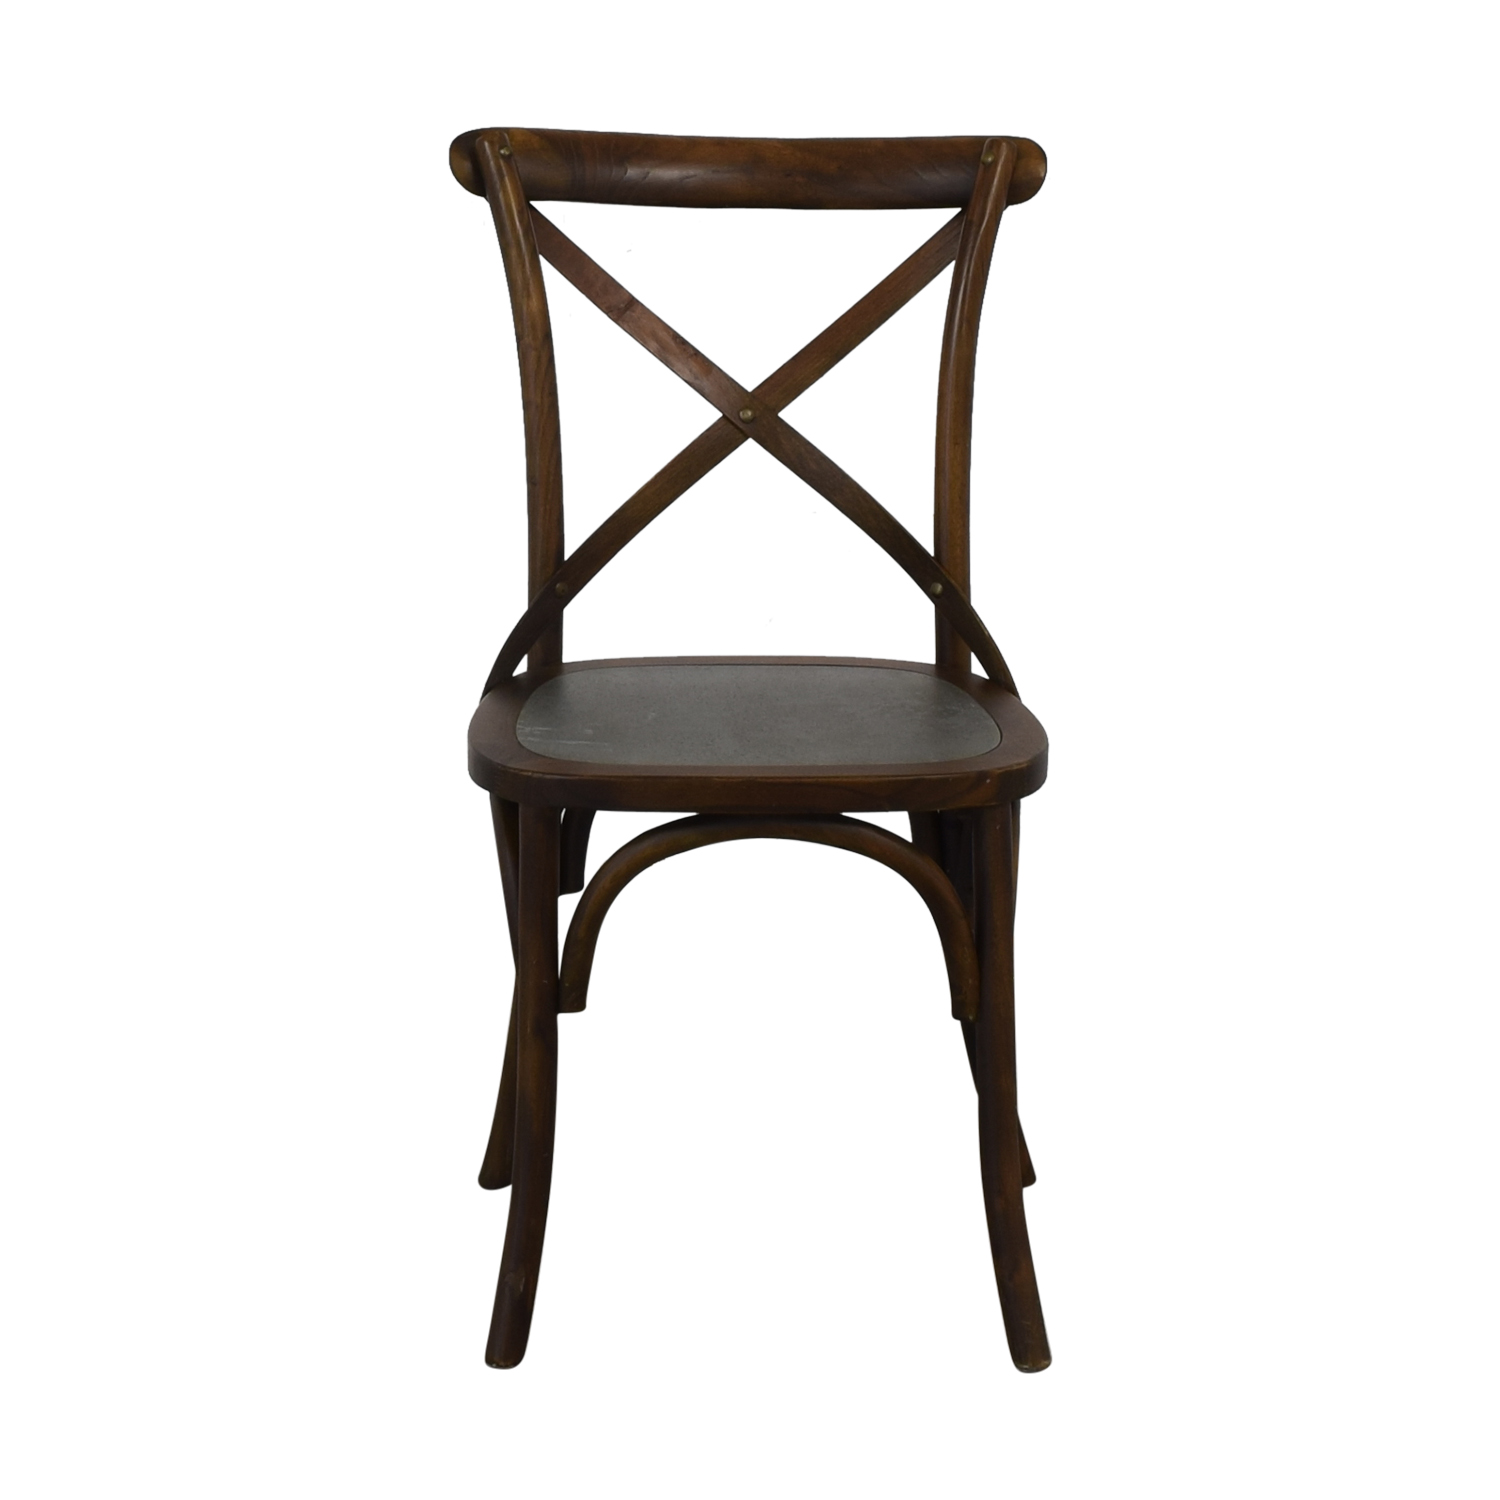 Sitcom Furniture Wood and Metal Dining Chairs / Chairs